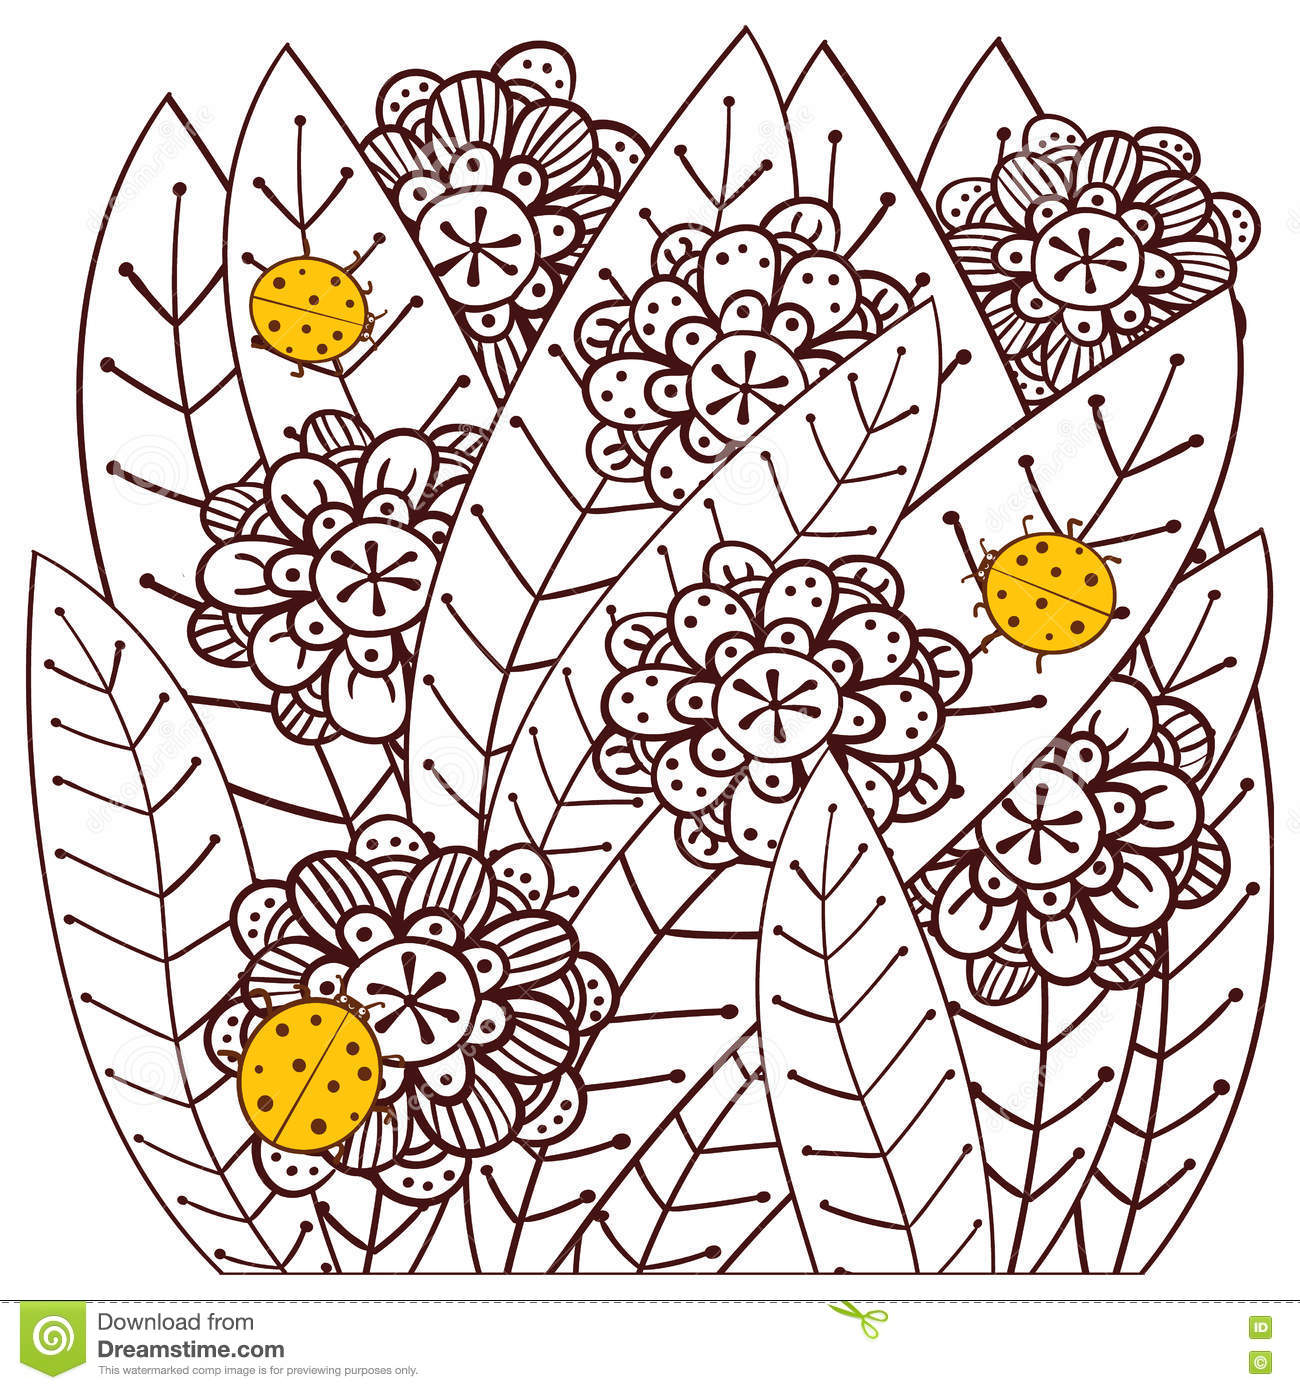 whimsical garden with ladybugs coloring book page vector